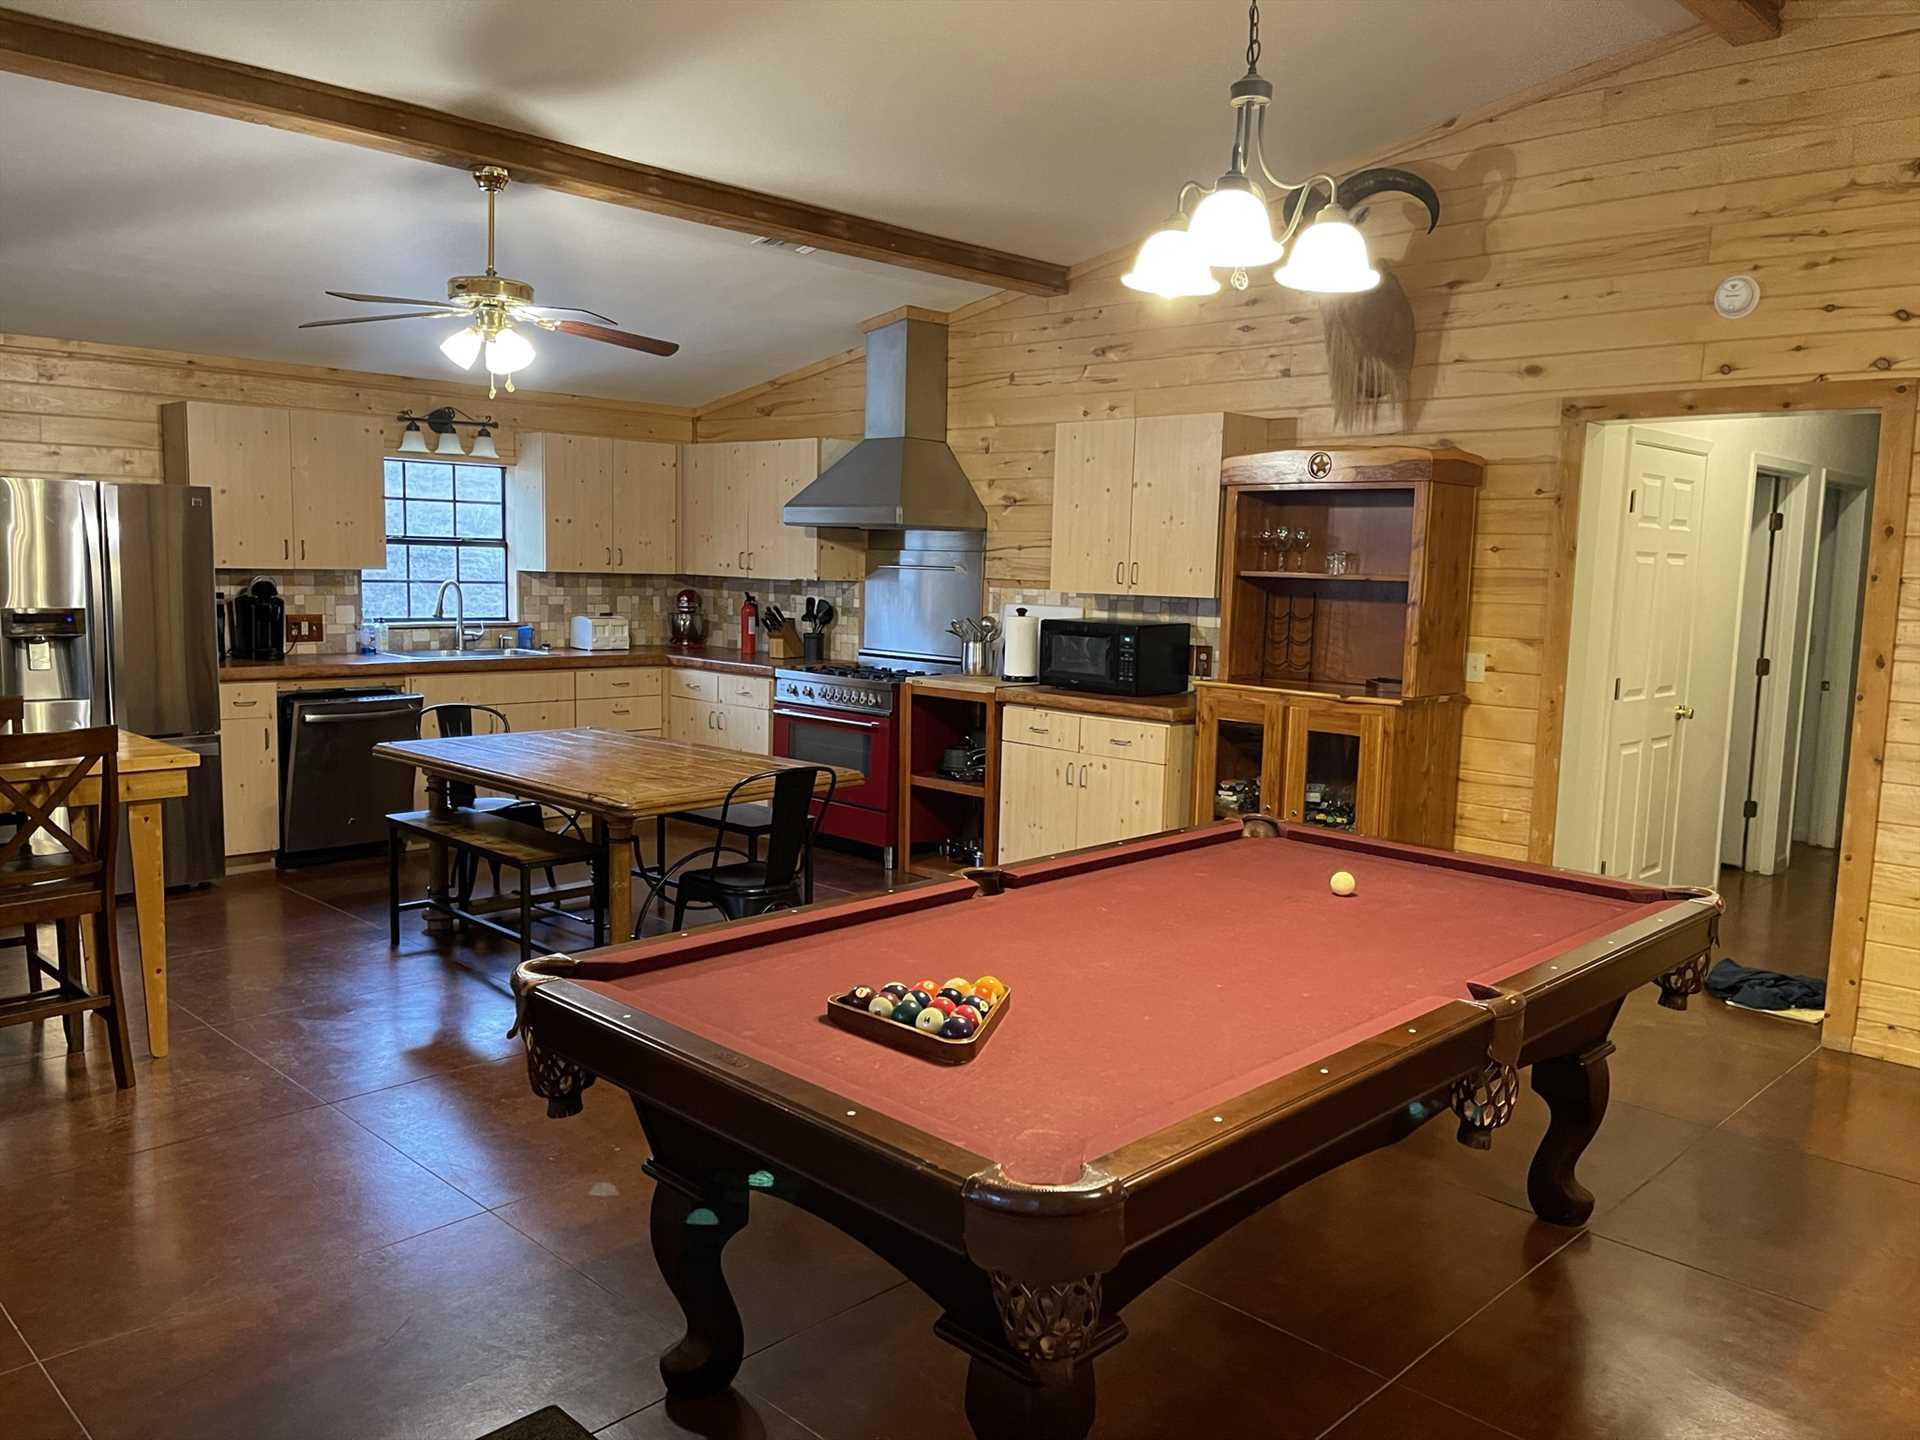 High ceilings and glowing woodwork create a welcoming atmosphere in the Lodge, and the entire space is climate-controlled with central AC and heating.